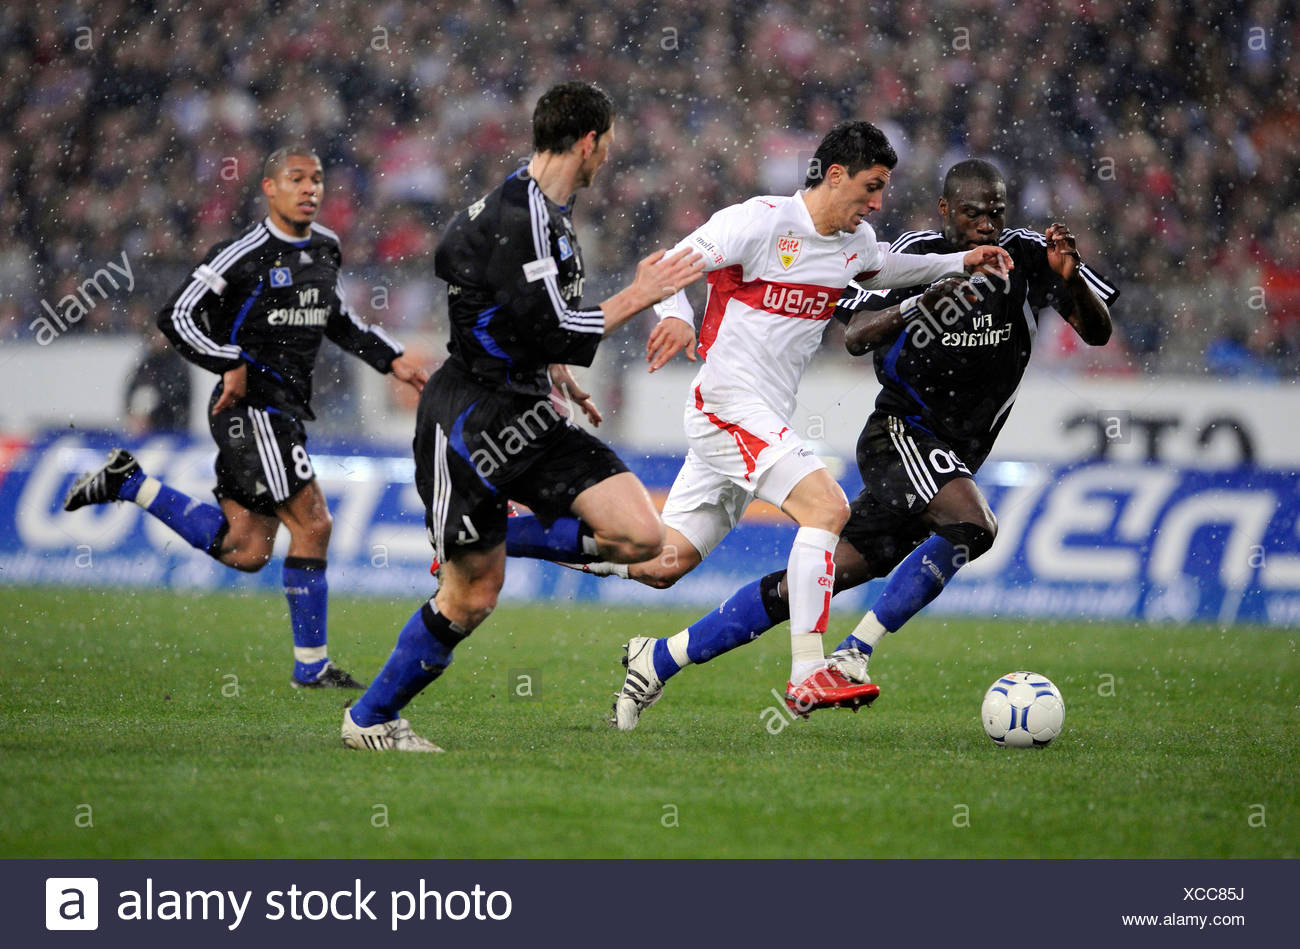 Tackle, Hamburg SV footballers Guy Demel (left) and Bastion Reinhardt (right) against VfB Stuttgart player Ciprian Marica (midd - Stock Image